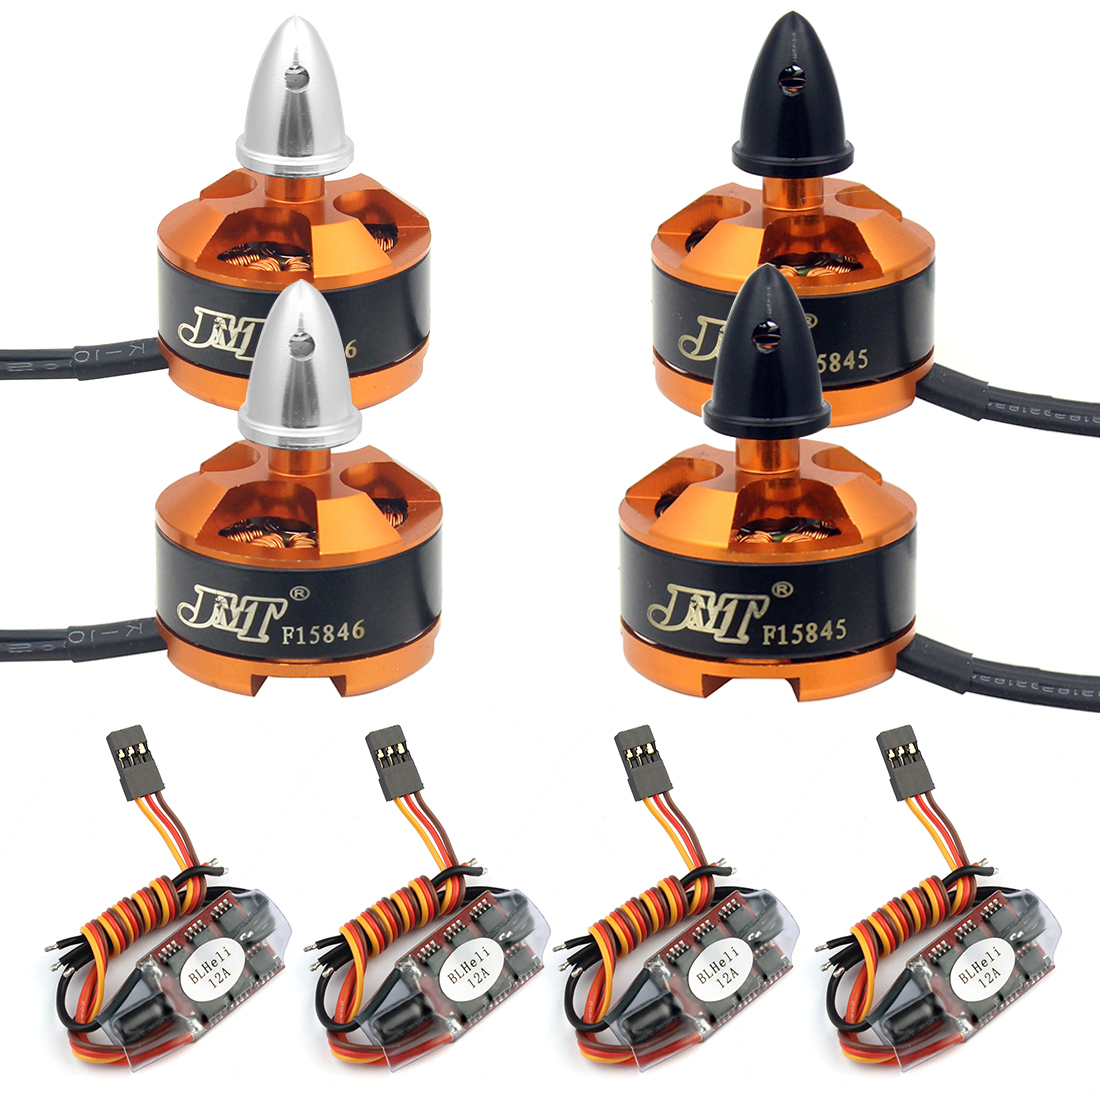 FPV Racing Drone Motor ESC Combo BLHeli 12A ESC 1806 2400KV Motor for Airplanes Helicopters RC Racer 4x 2300kv rs2205 racing edition motor 4x lhi lite 20a blheli s speed controller bb1 2 4s brushless esc for fpv racer